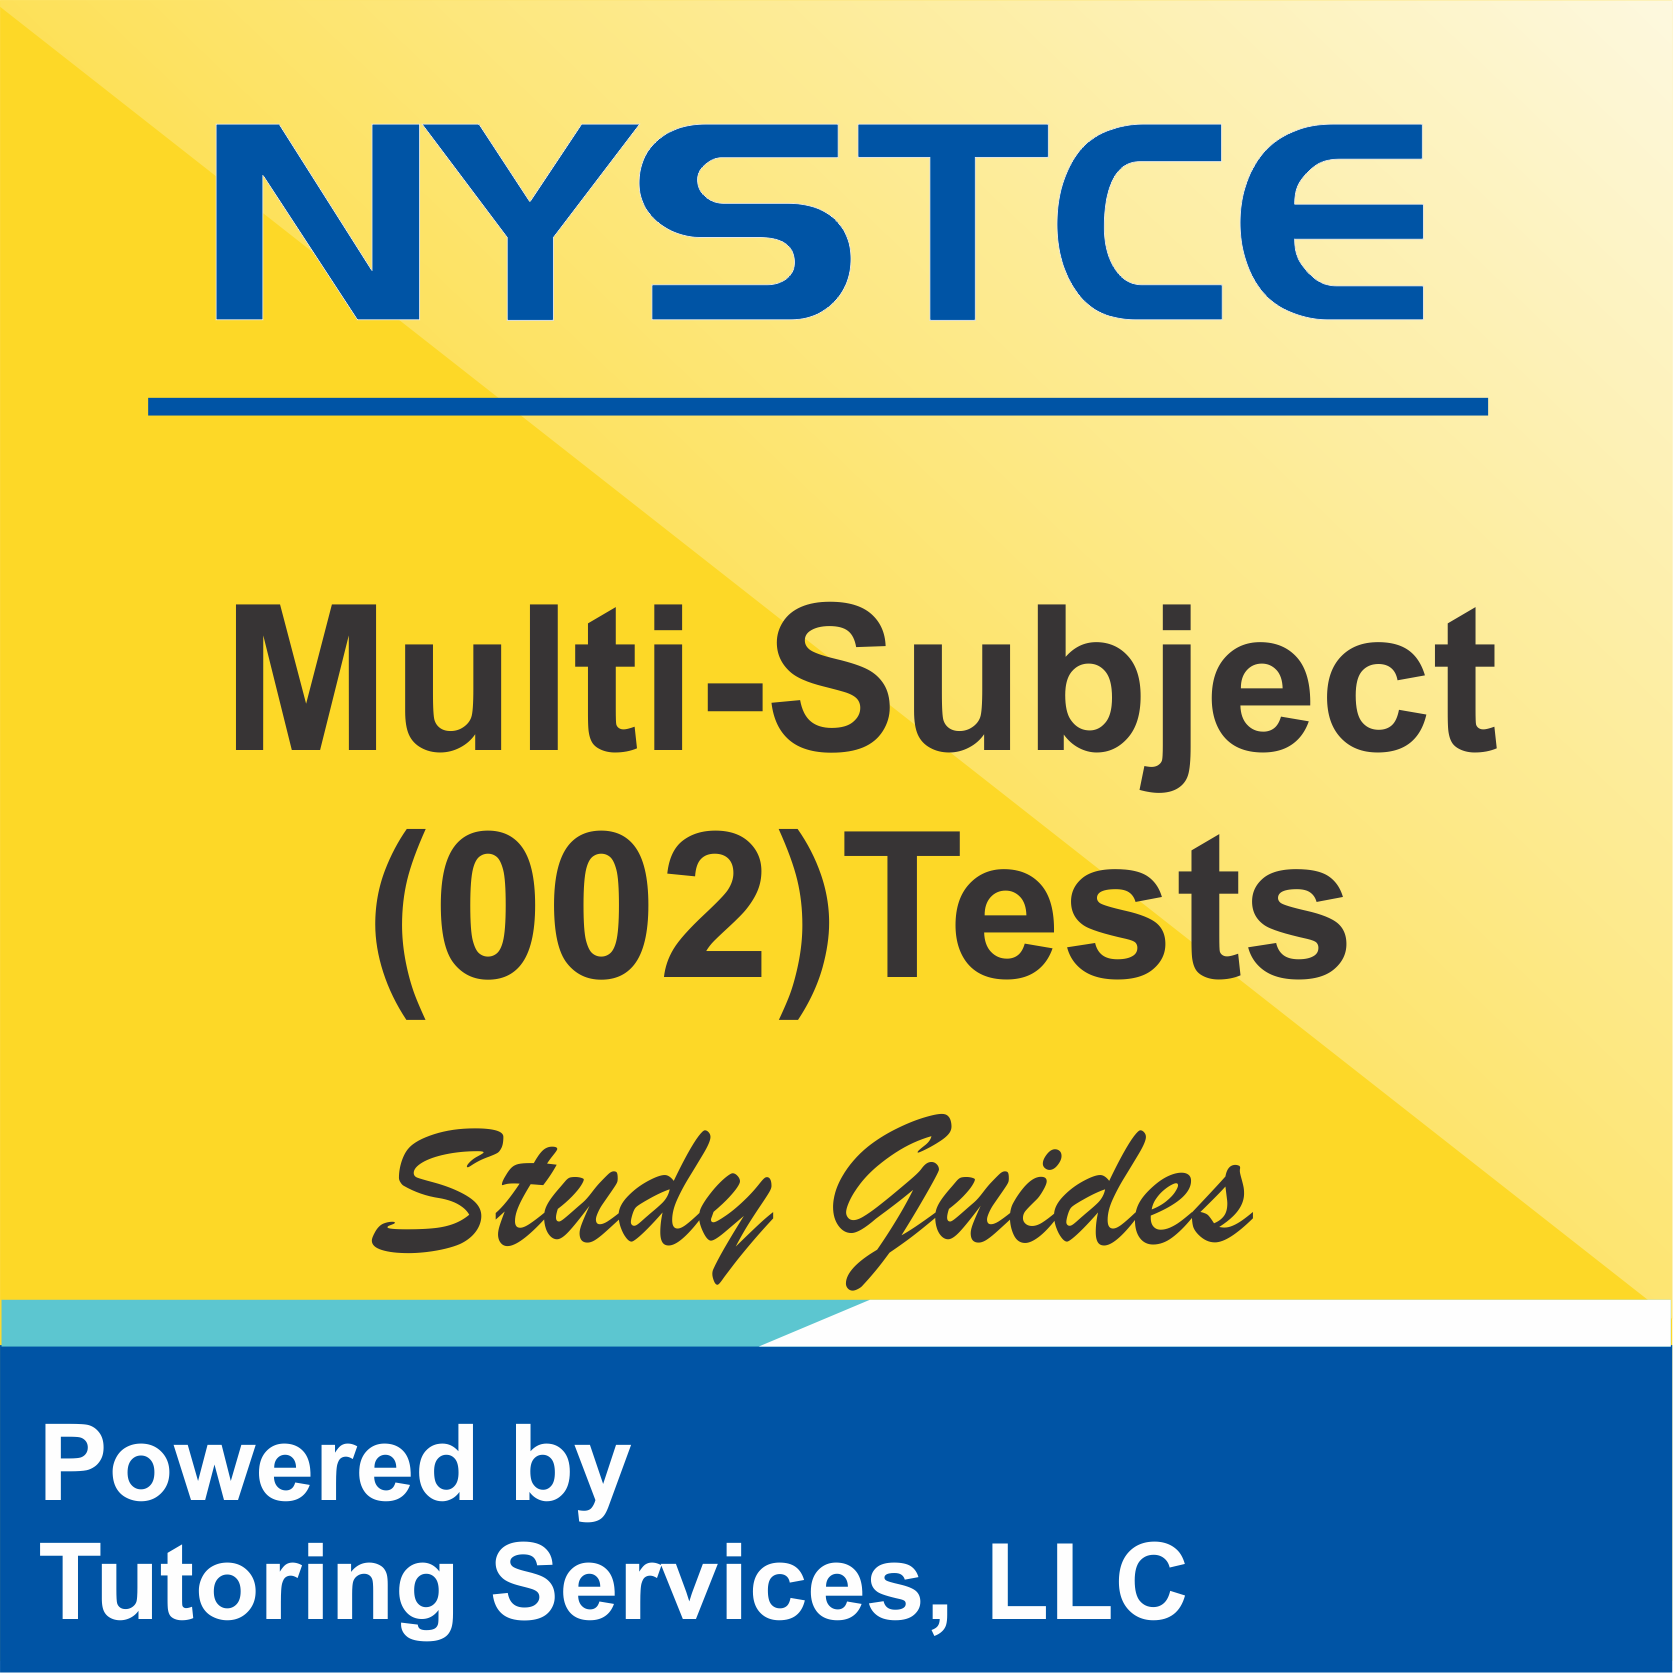 NYSTCE Teaching Certification Assessment Details for Multi-Subject 002